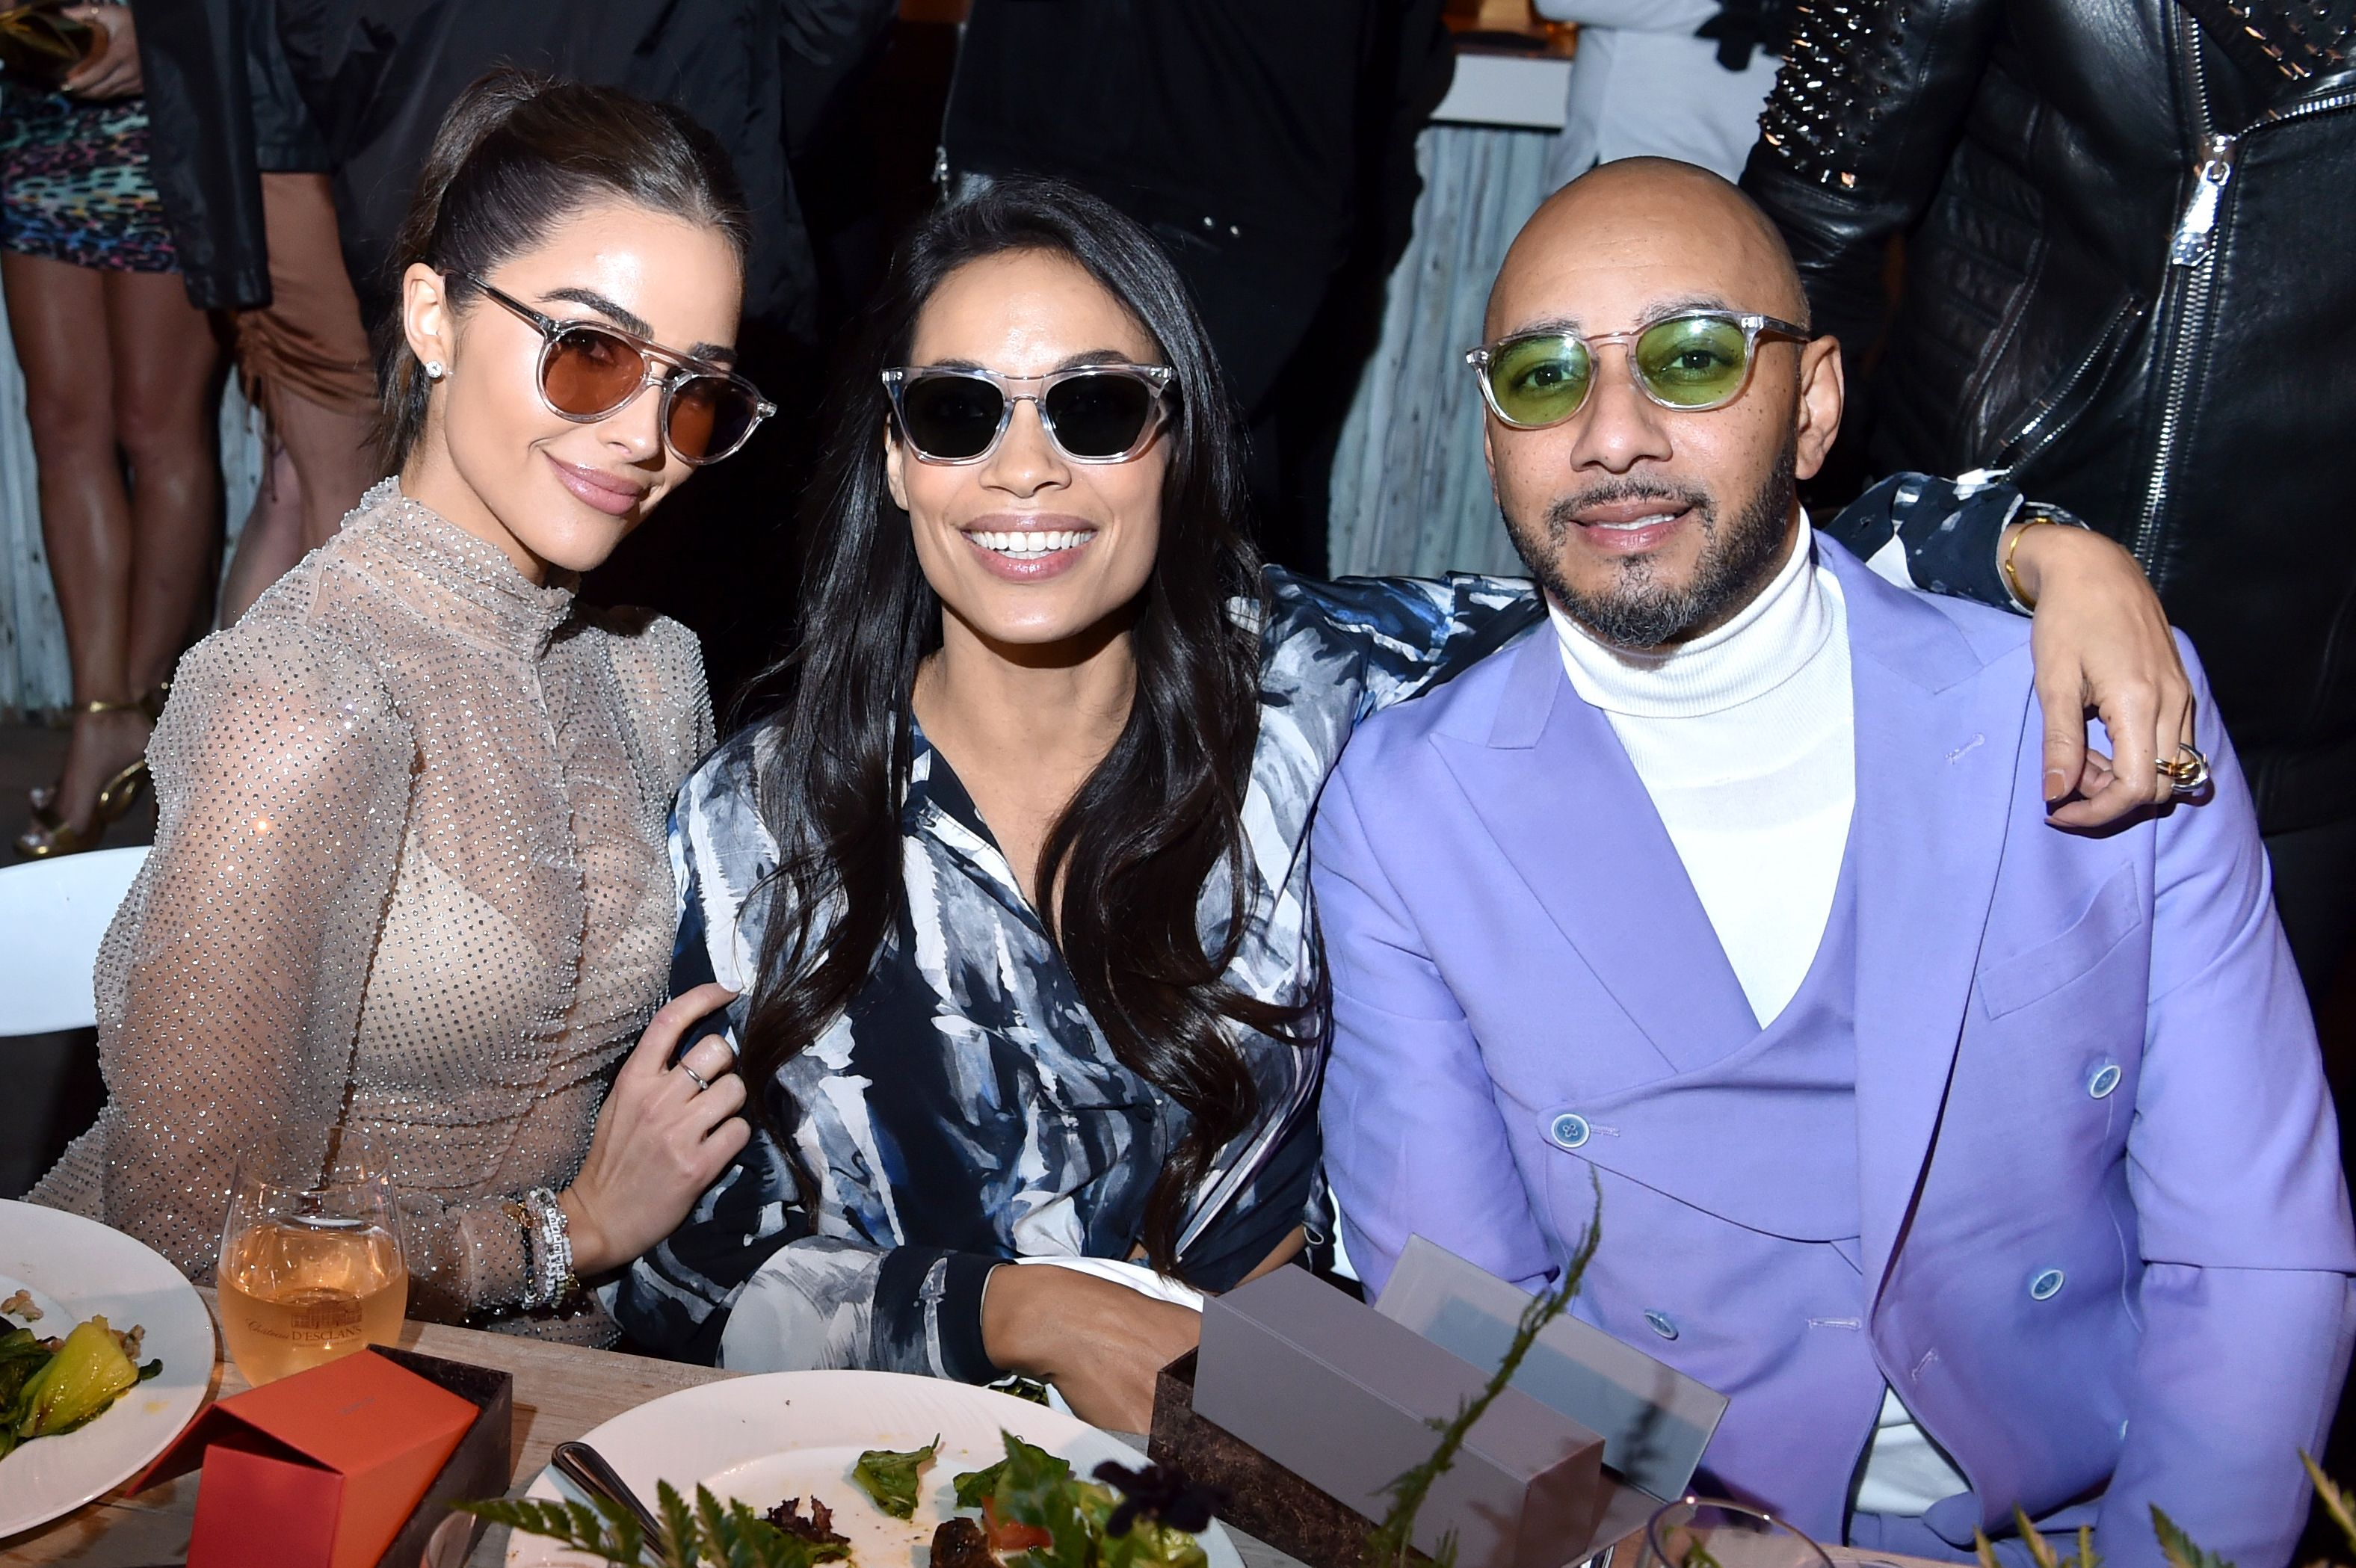 Olivia Culpo, Rosario Dawson and Swizz Beatz.